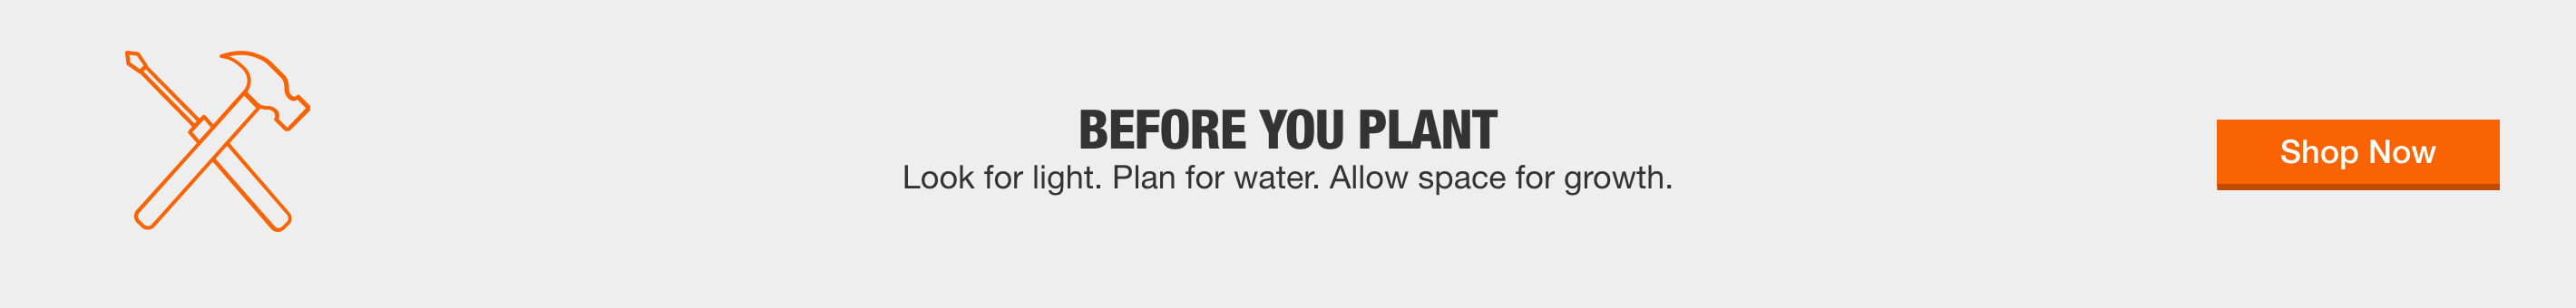 Before You Plant - Look for light. Plan for water. Allow space for growth. Shop Now